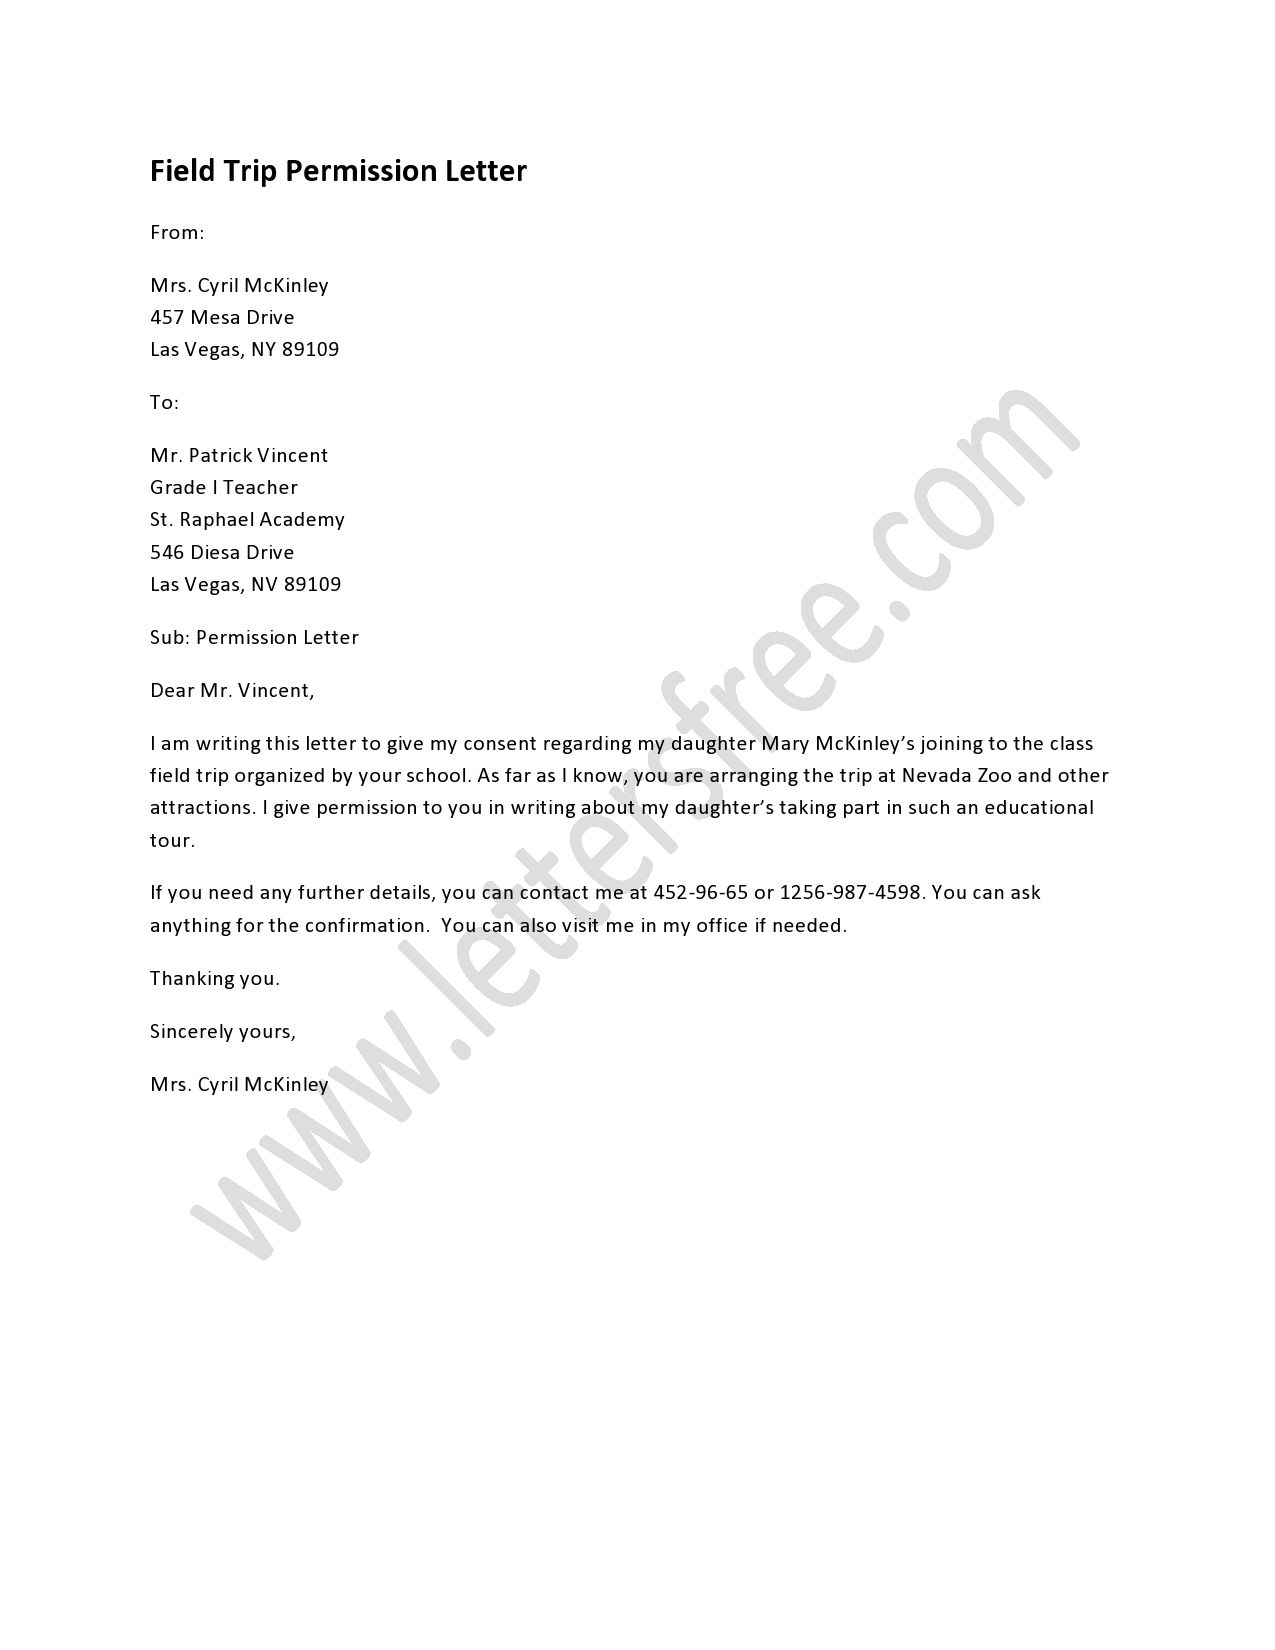 field trip permission letter template example-A field trip permission letter is written to permit an individual going for a field trip and the letter should be submitted to the concerned authority 6-k